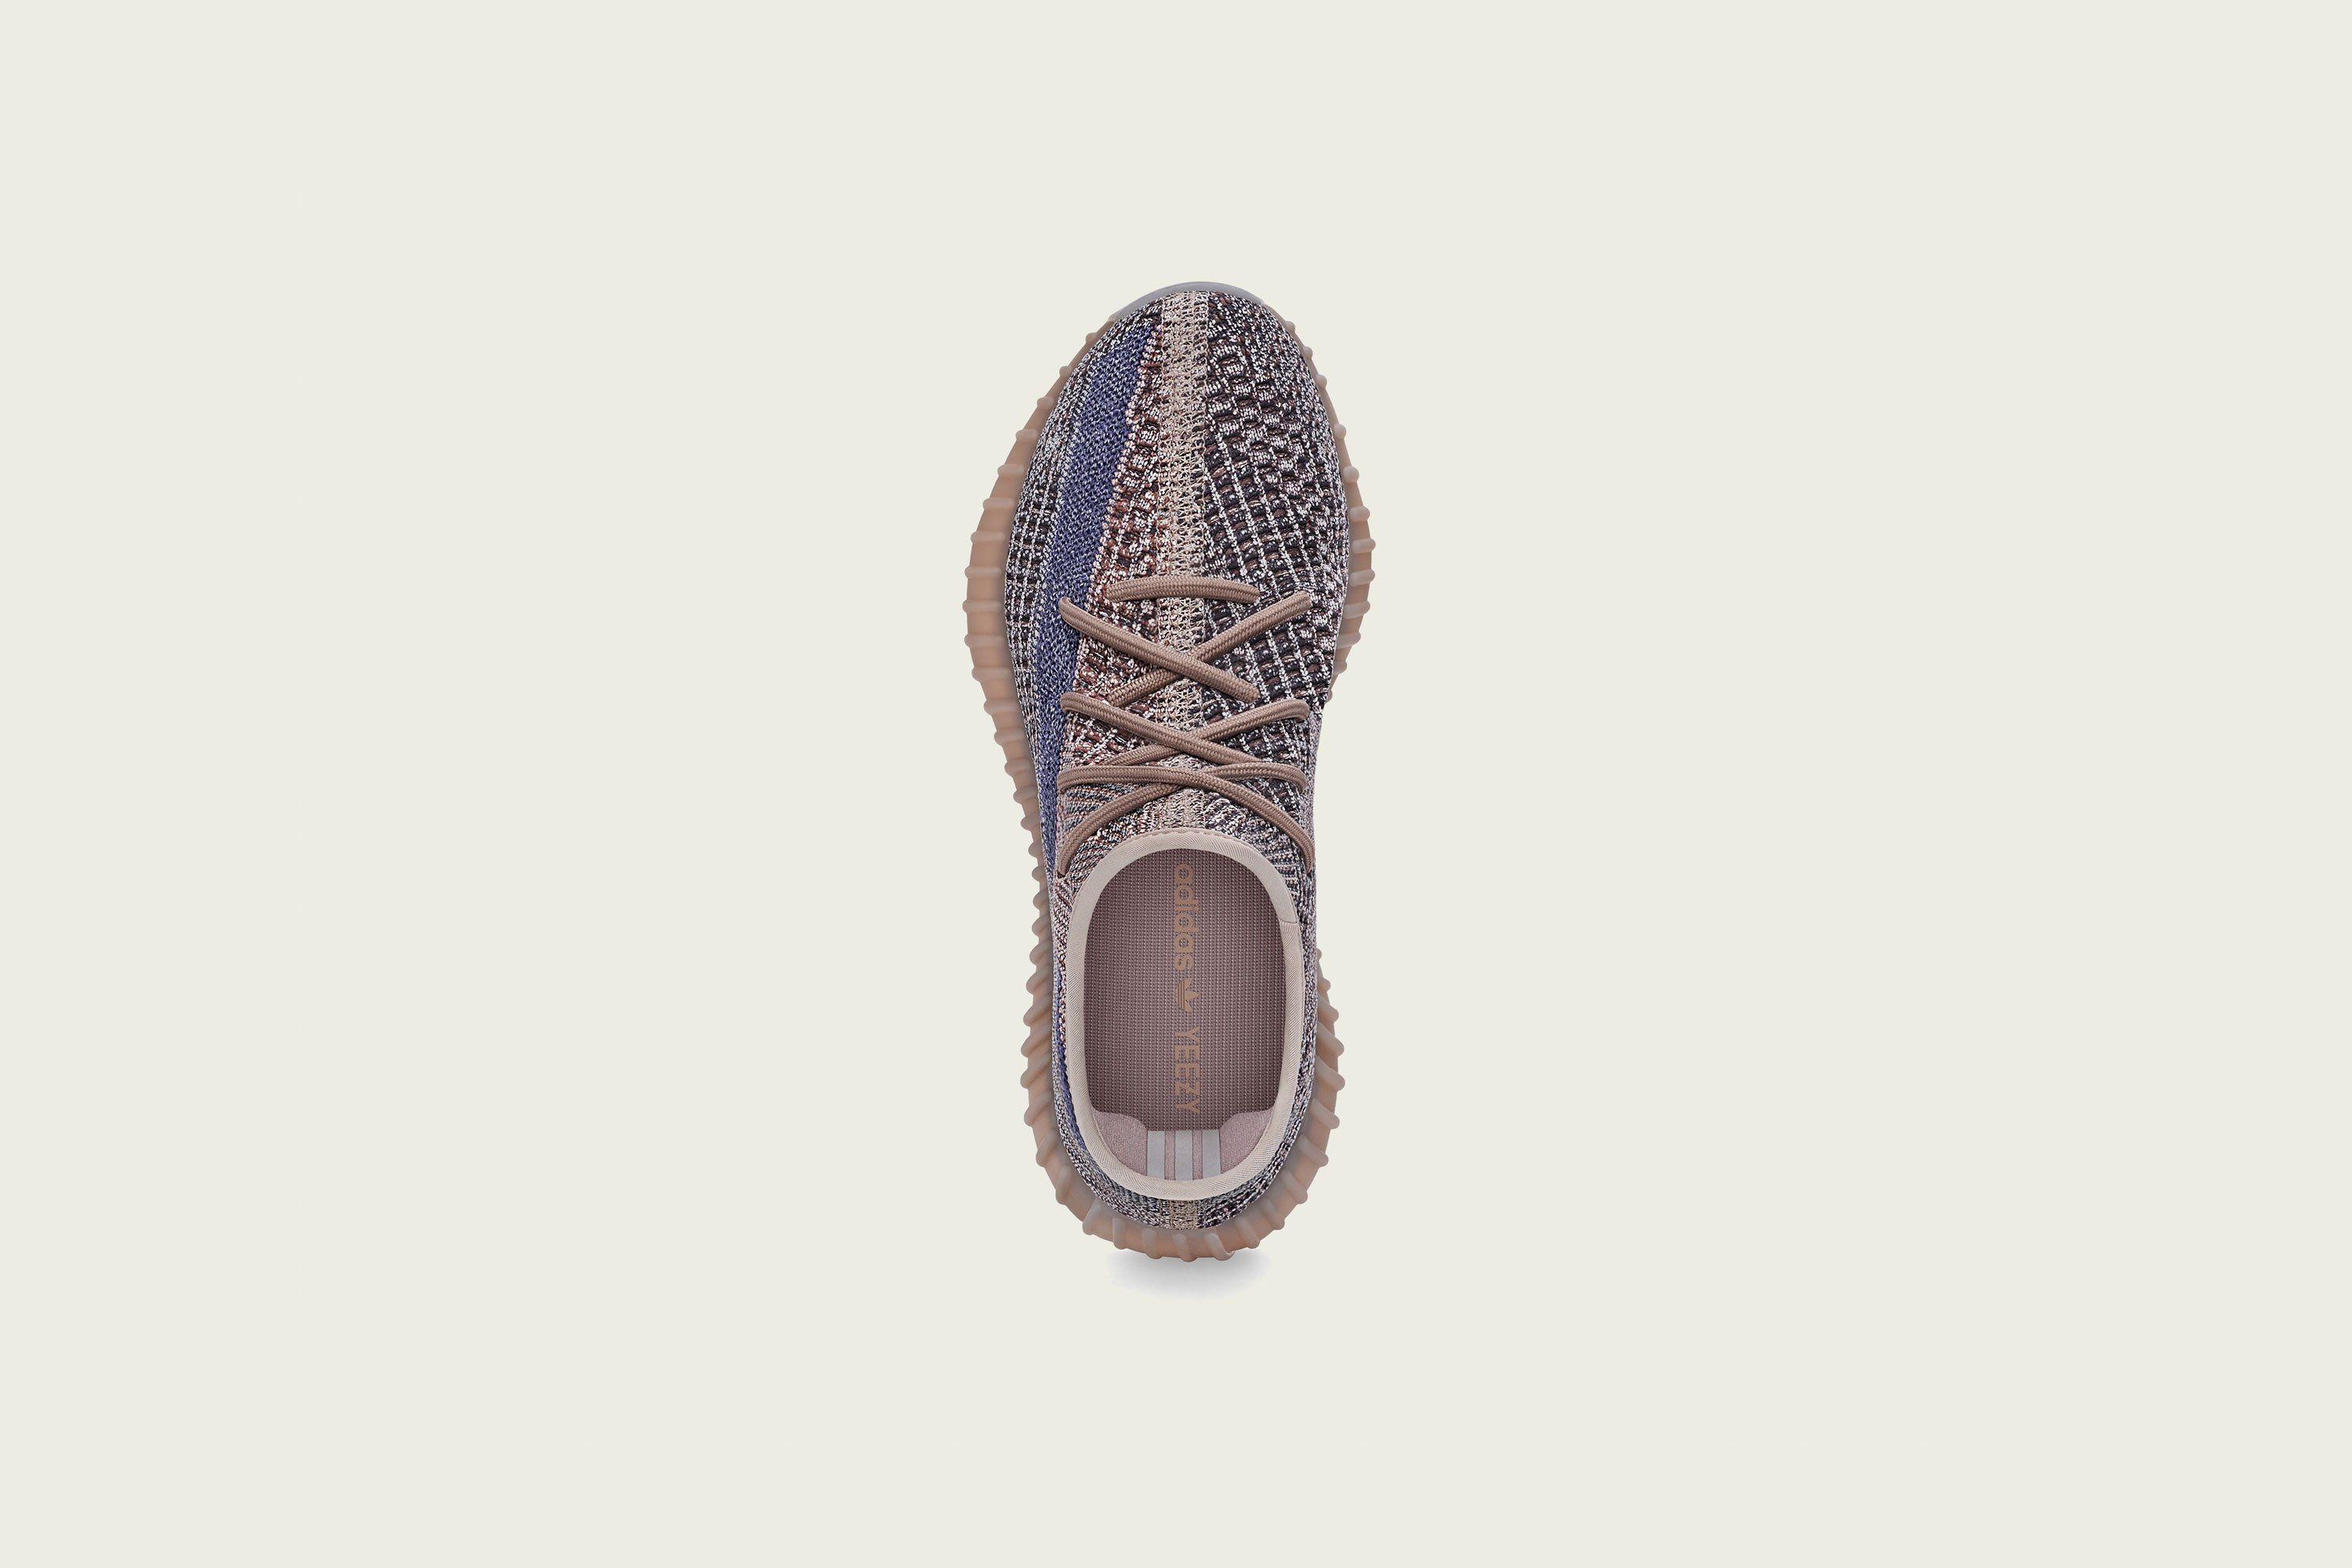 Yeezy - Yeezy Boost 350v2 - Fade - Up There